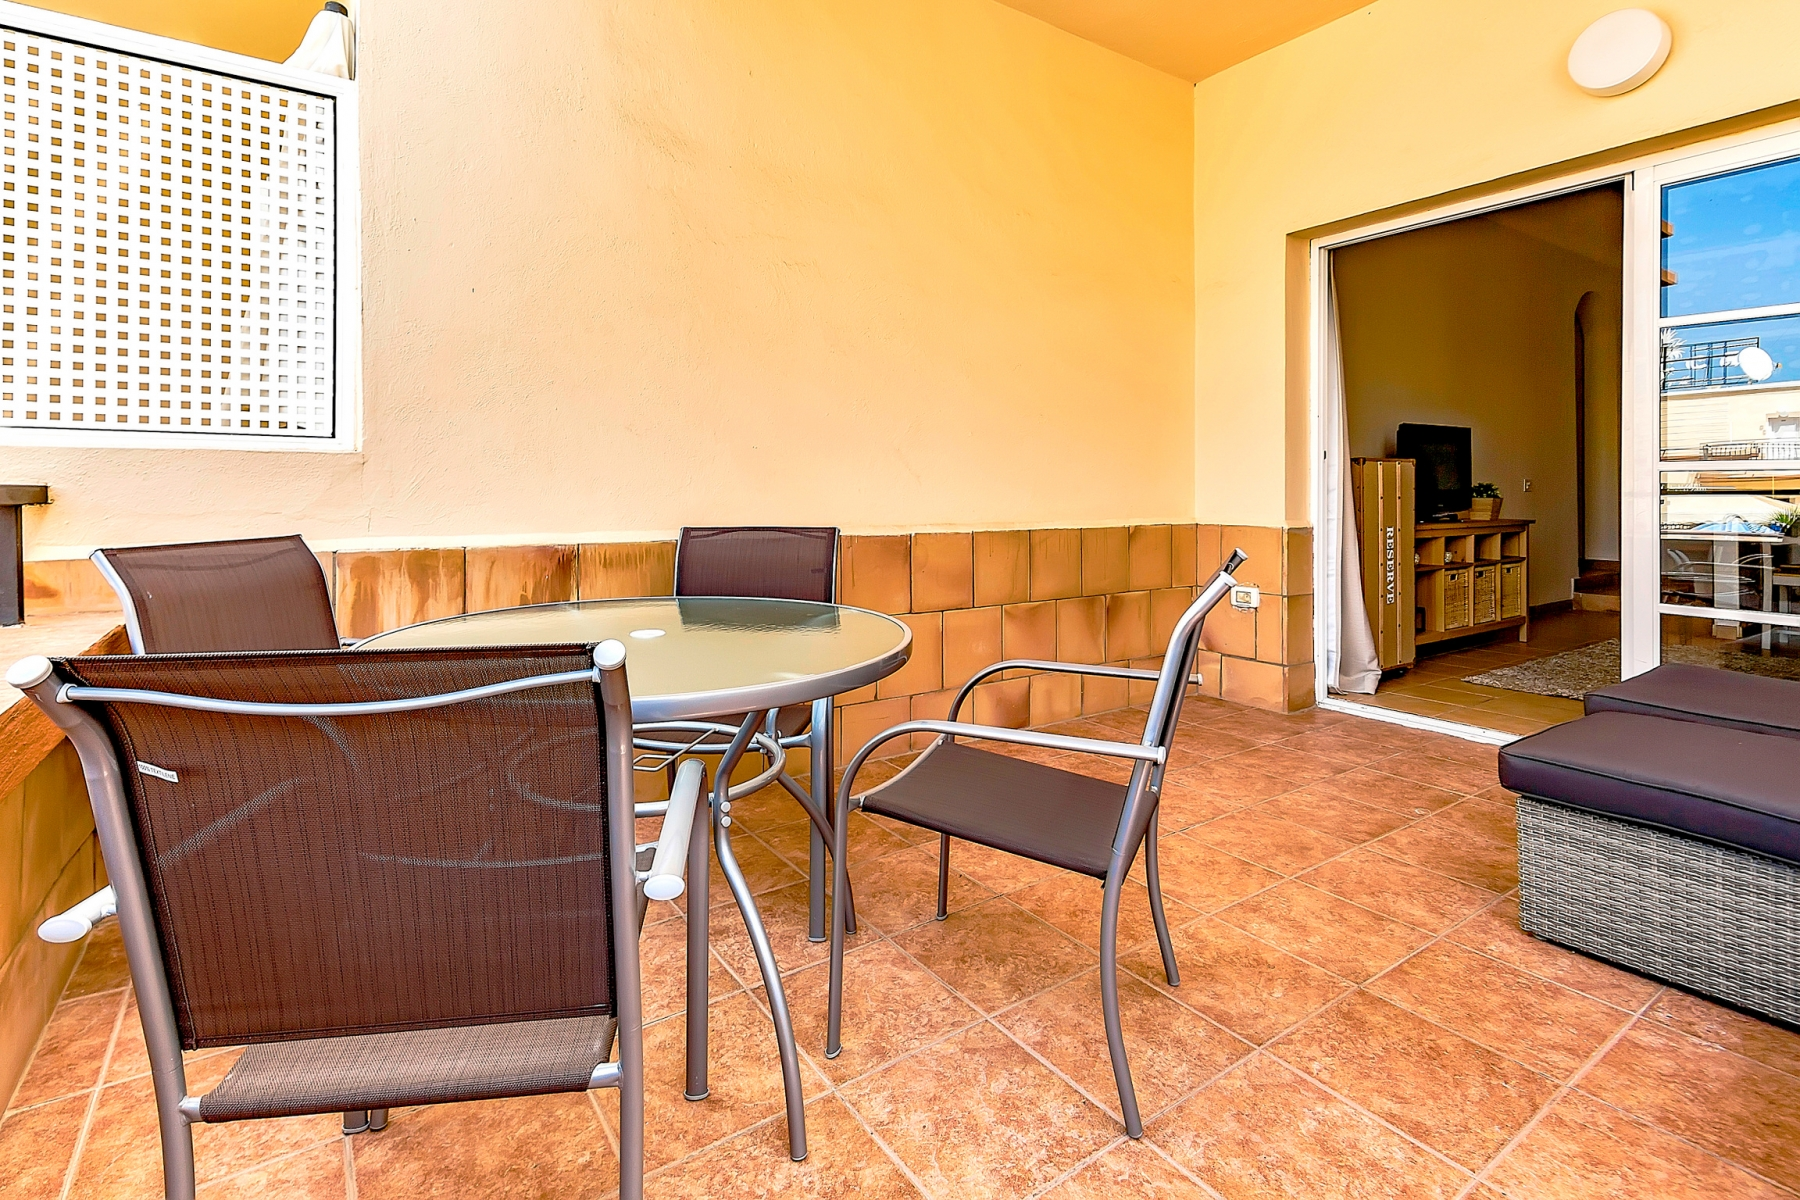 Properties for Sale in Tenerife, Canary Islands, Spain | SylkWayStar Real Estate. 1 bedroom apartment Yucca Park. Image-22598